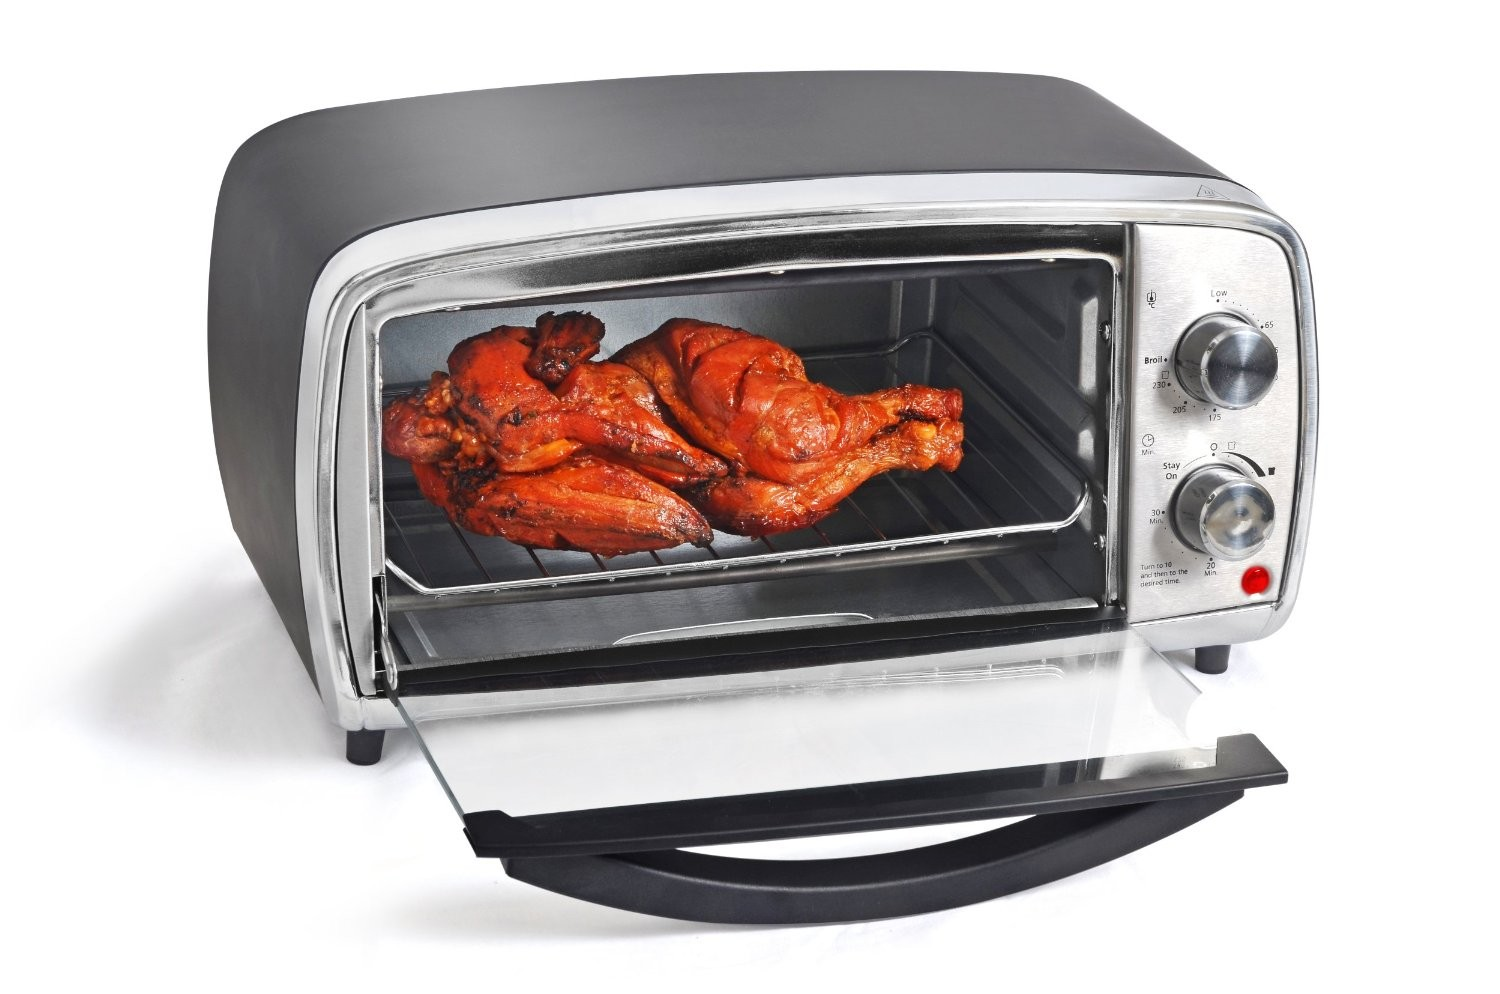 oven toaster griller how to use